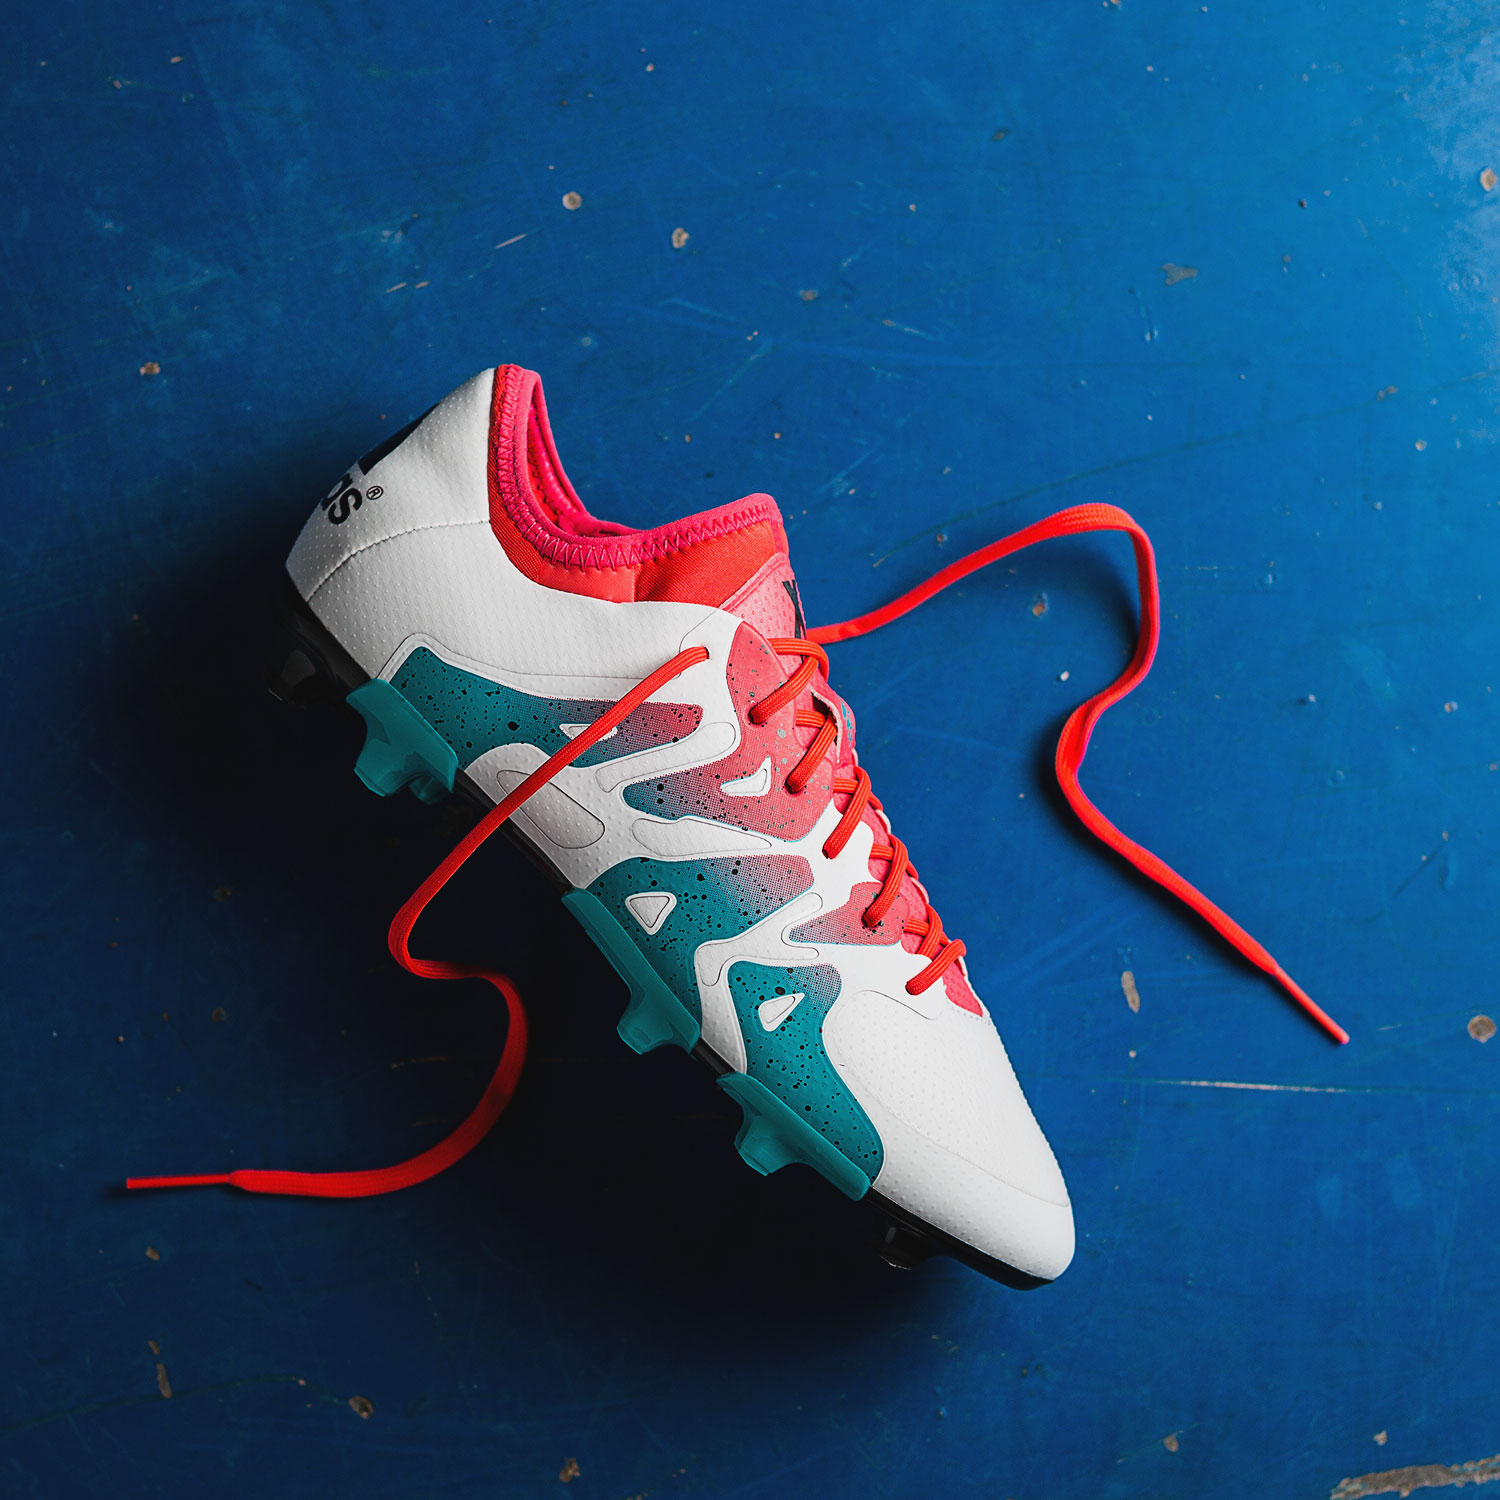 New colourway for the women The adidas X 15.1 |